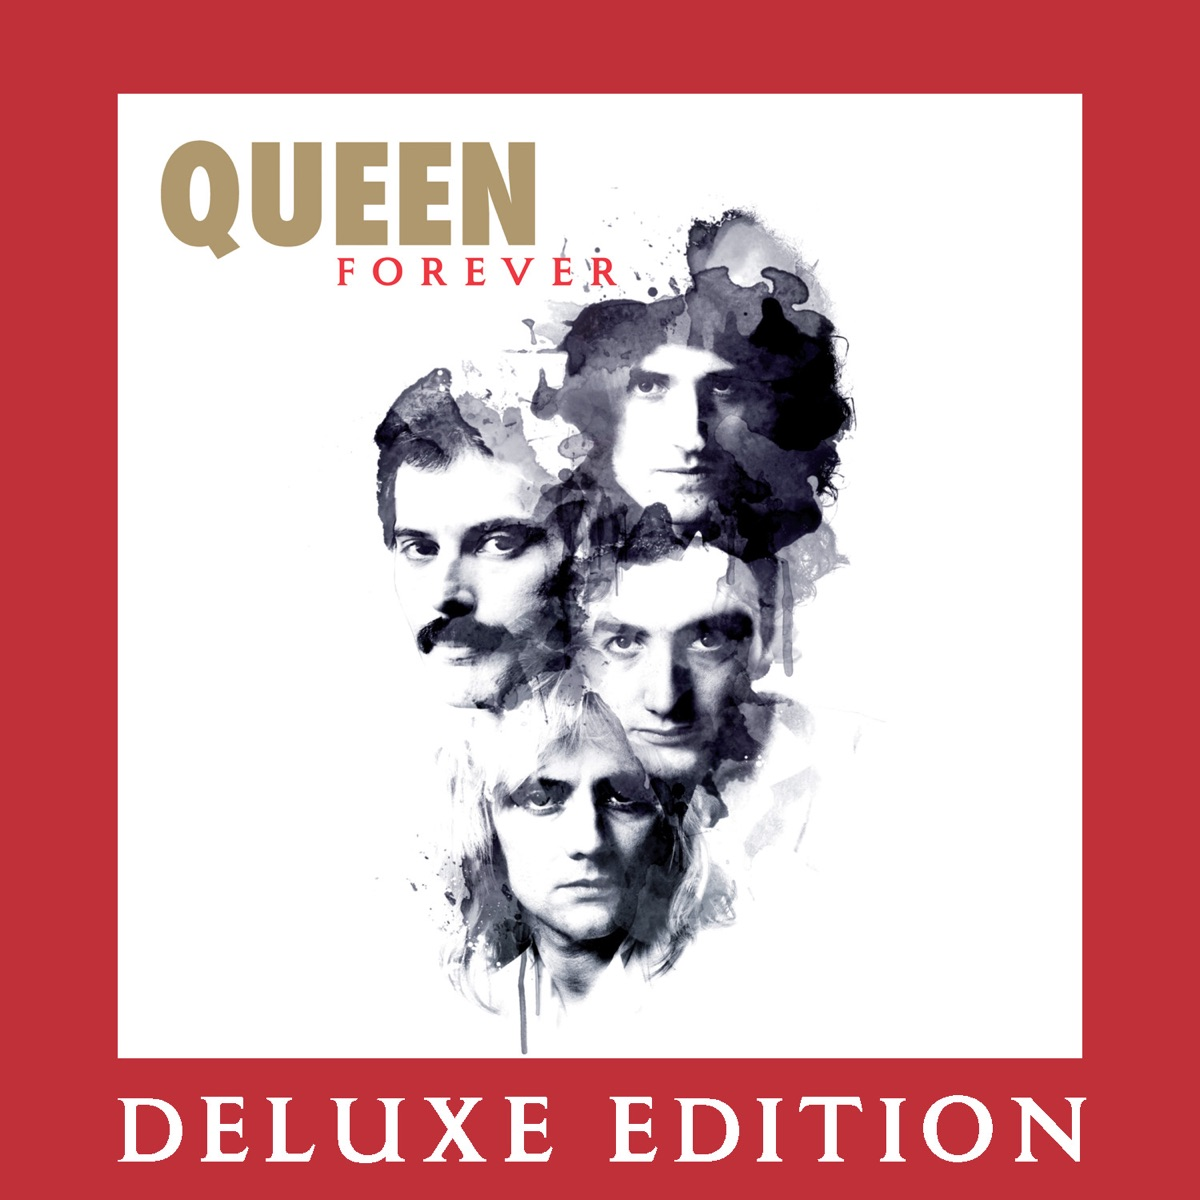 Forever Deluxe Edition Queen CD cover